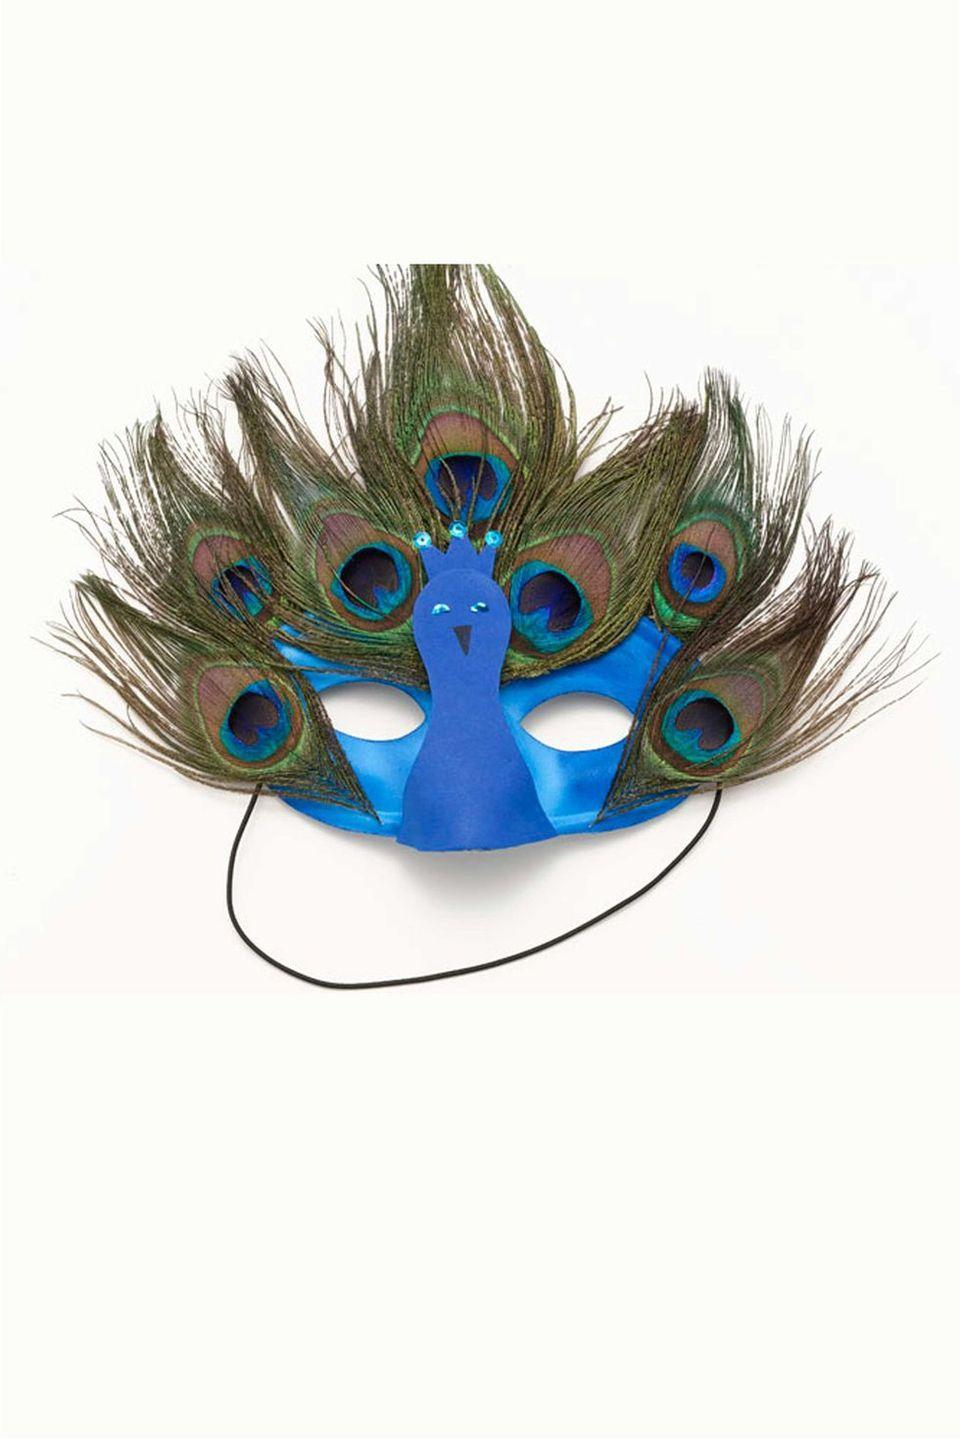 <p>To create this festive peacock mask, glue peacock feathers to a blue mask from the costume store (and for an extra flourish, glue a cute construction paper bird between the eyes). </p>